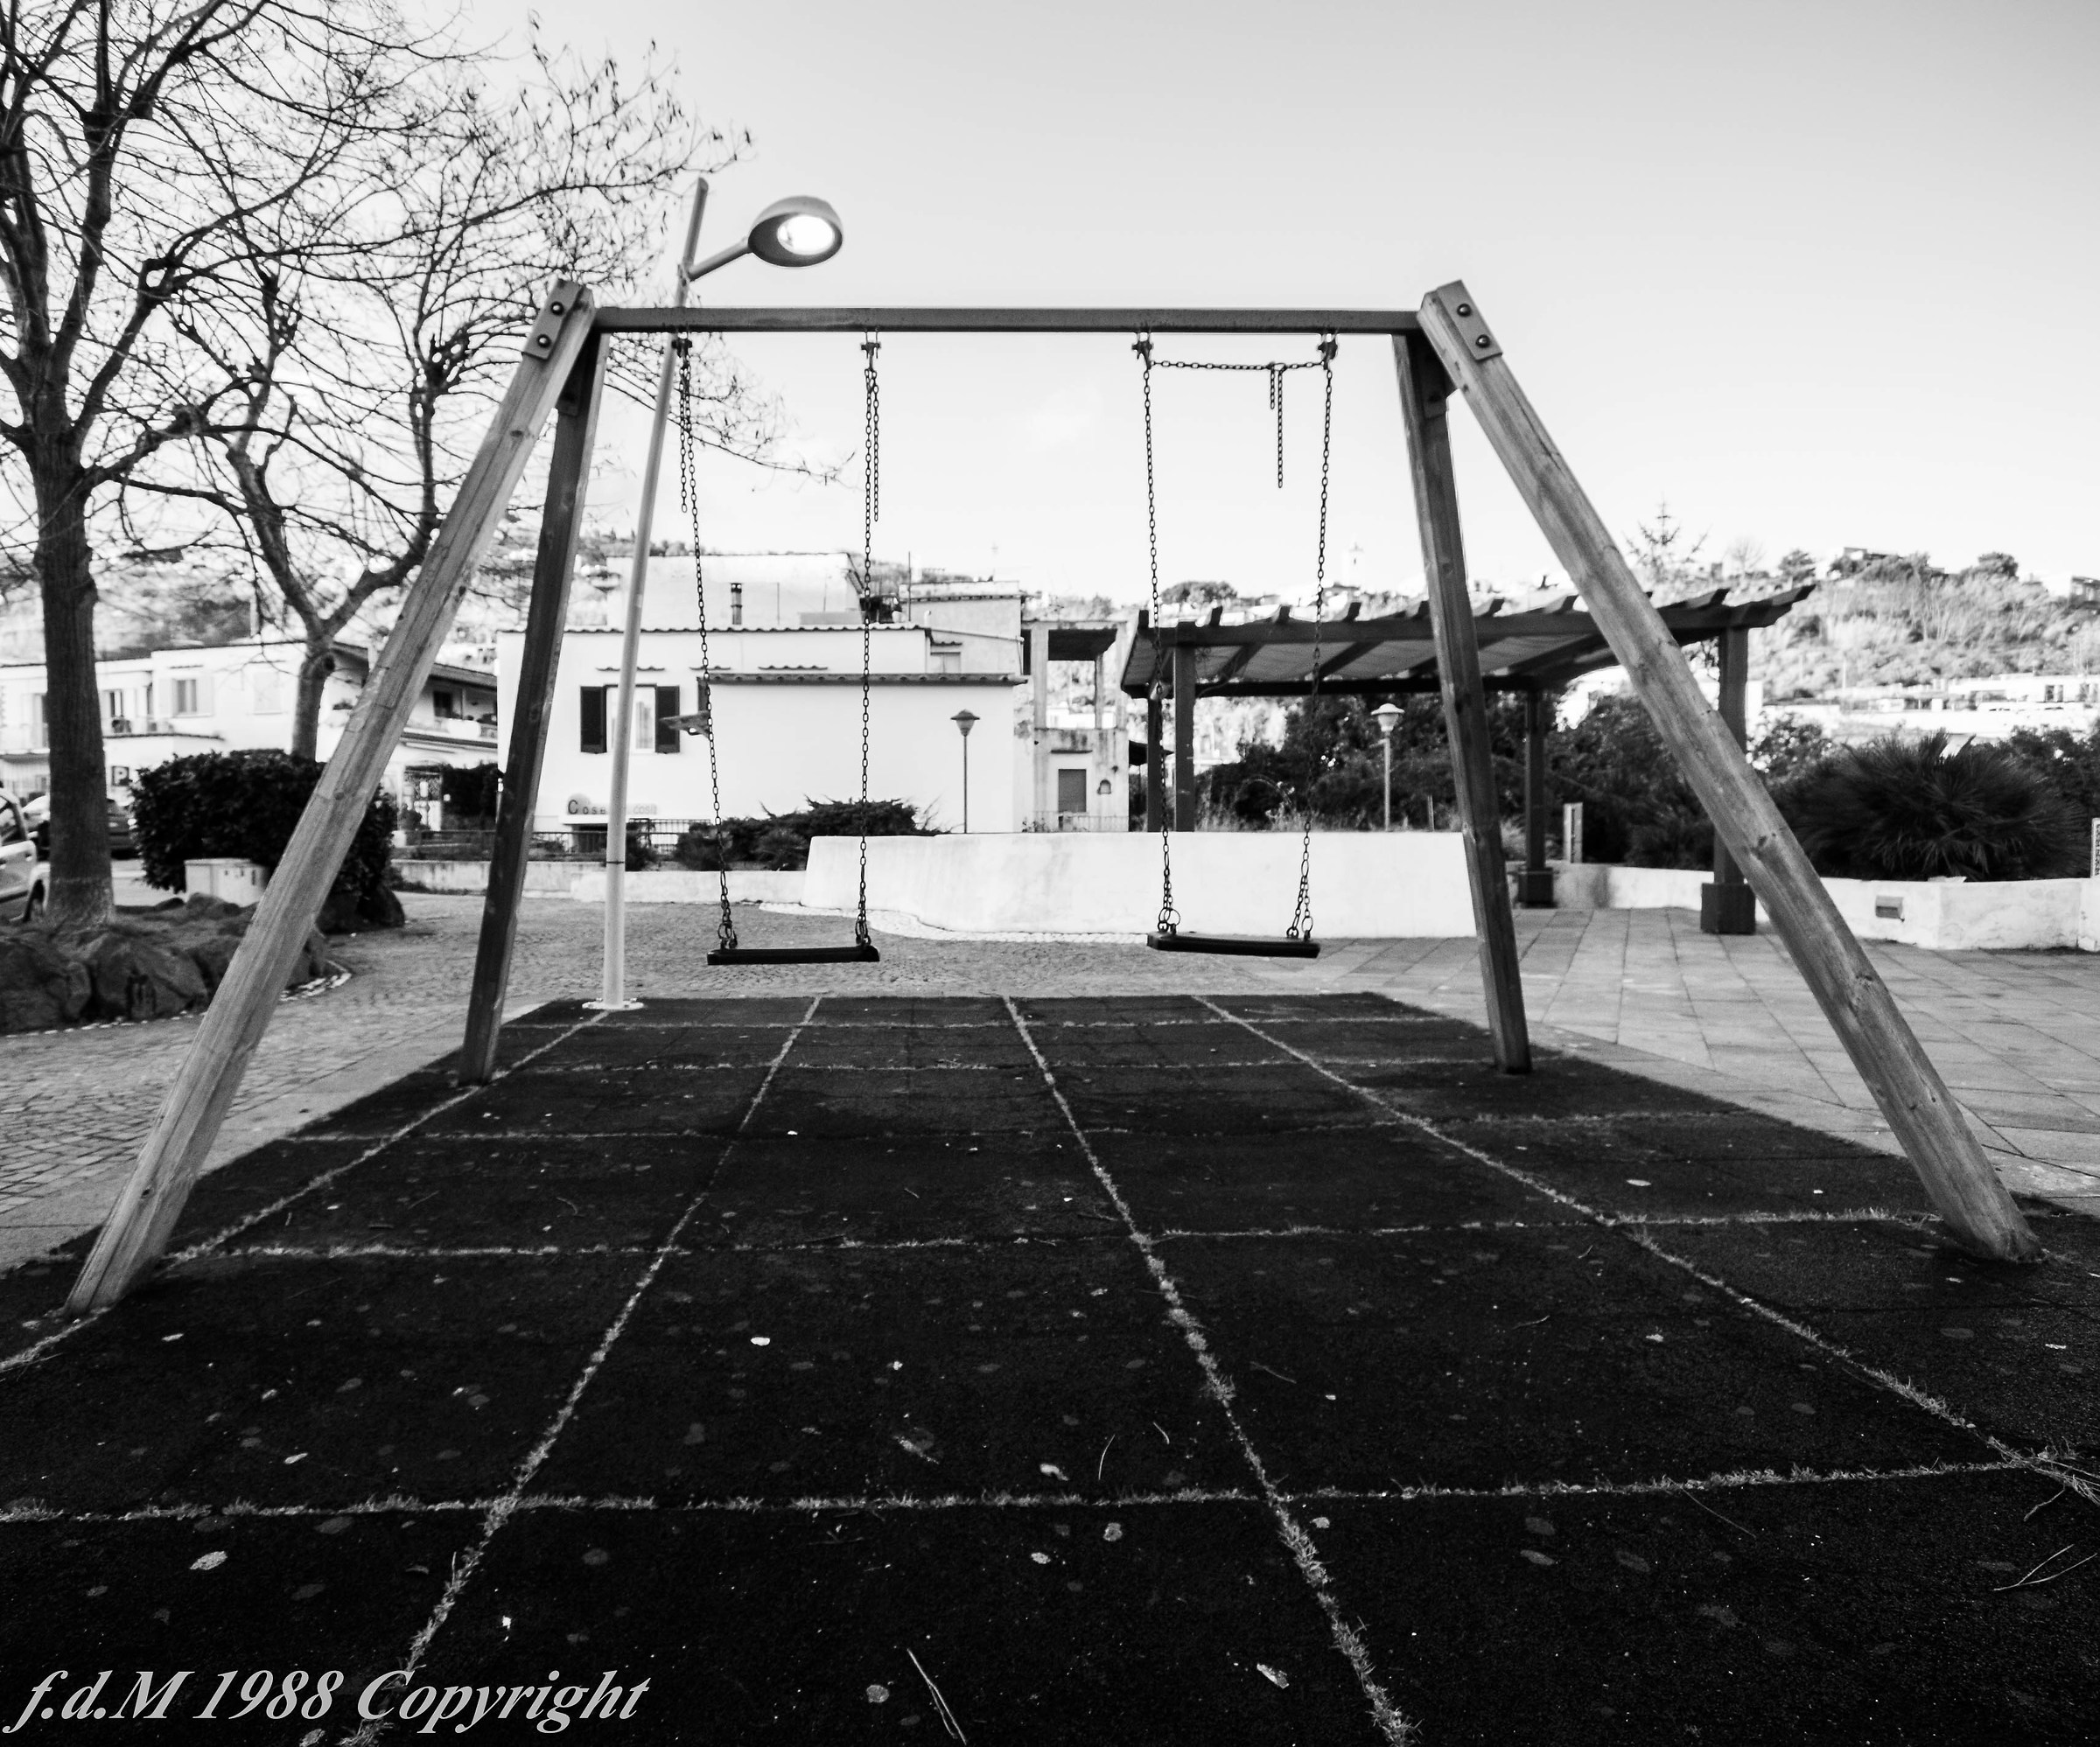 the swing sad without children...